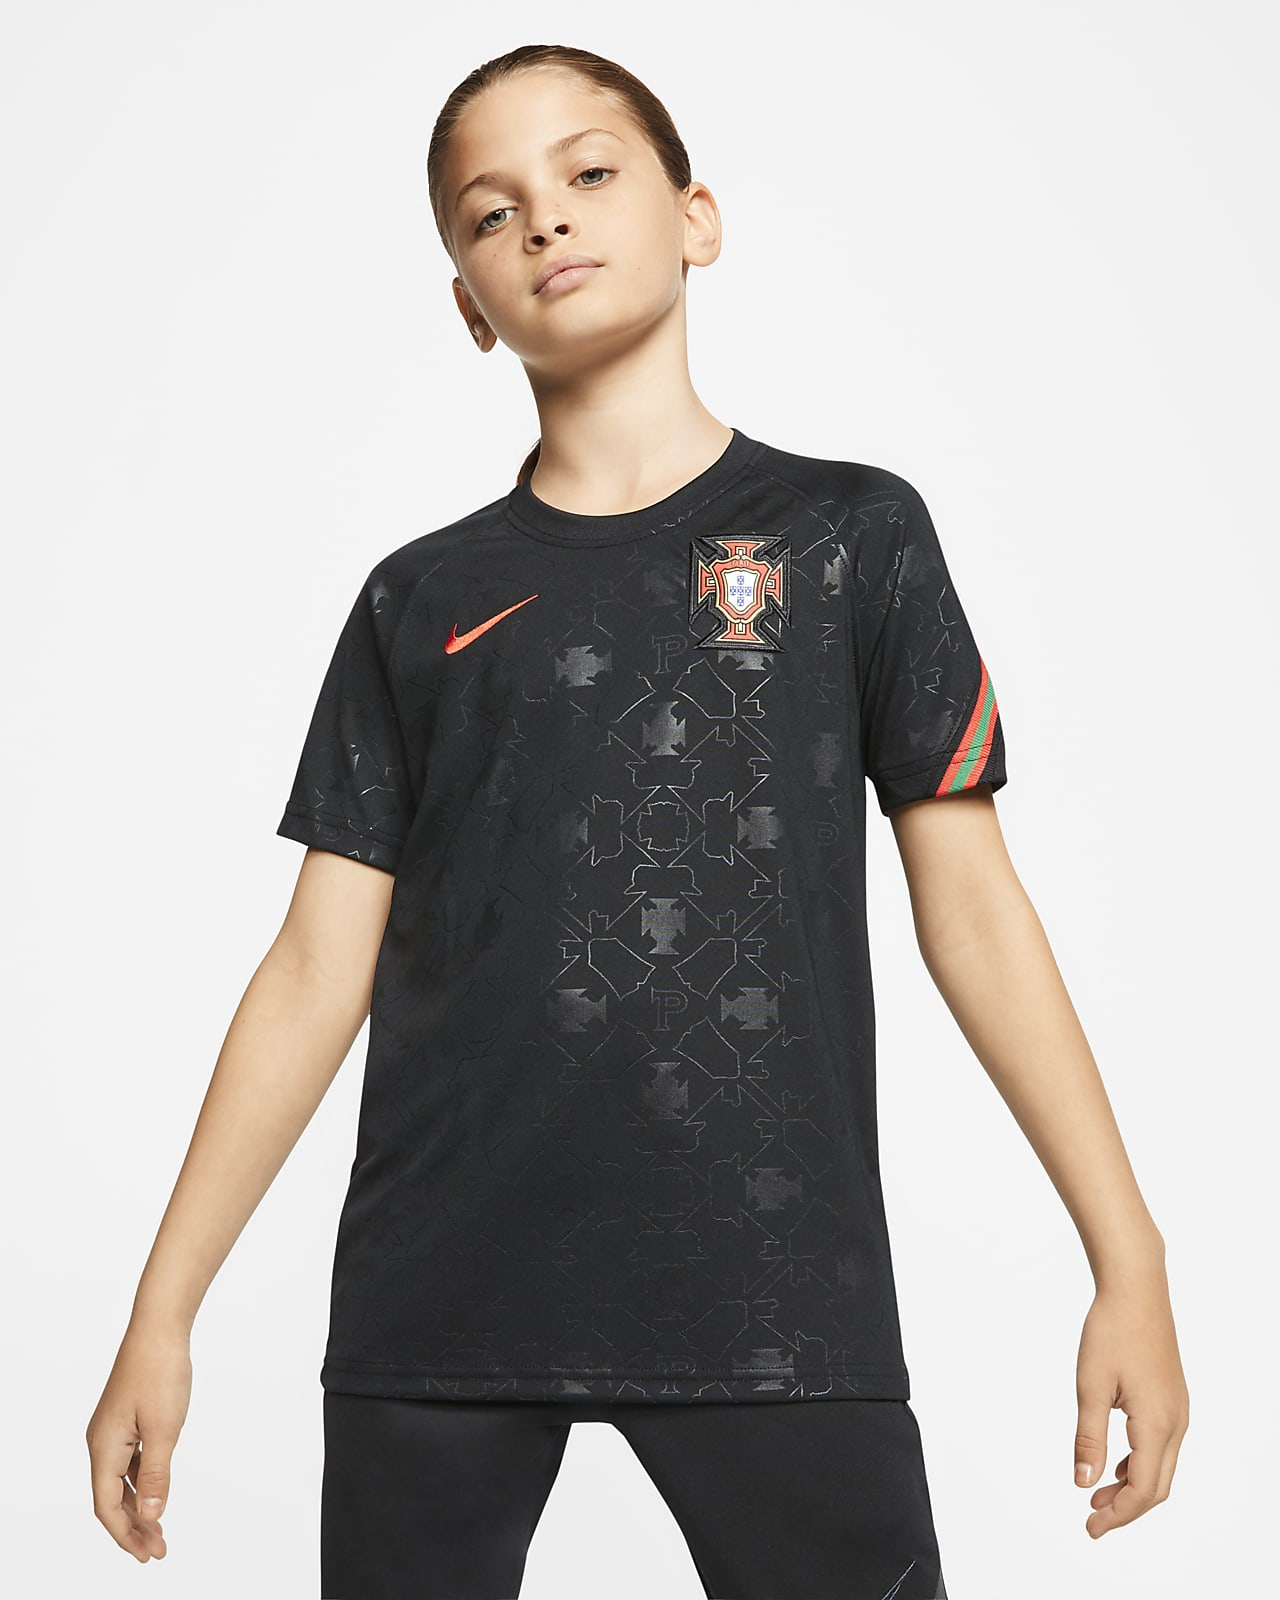 Portugal Older Kids' Short-Sleeve Football Top